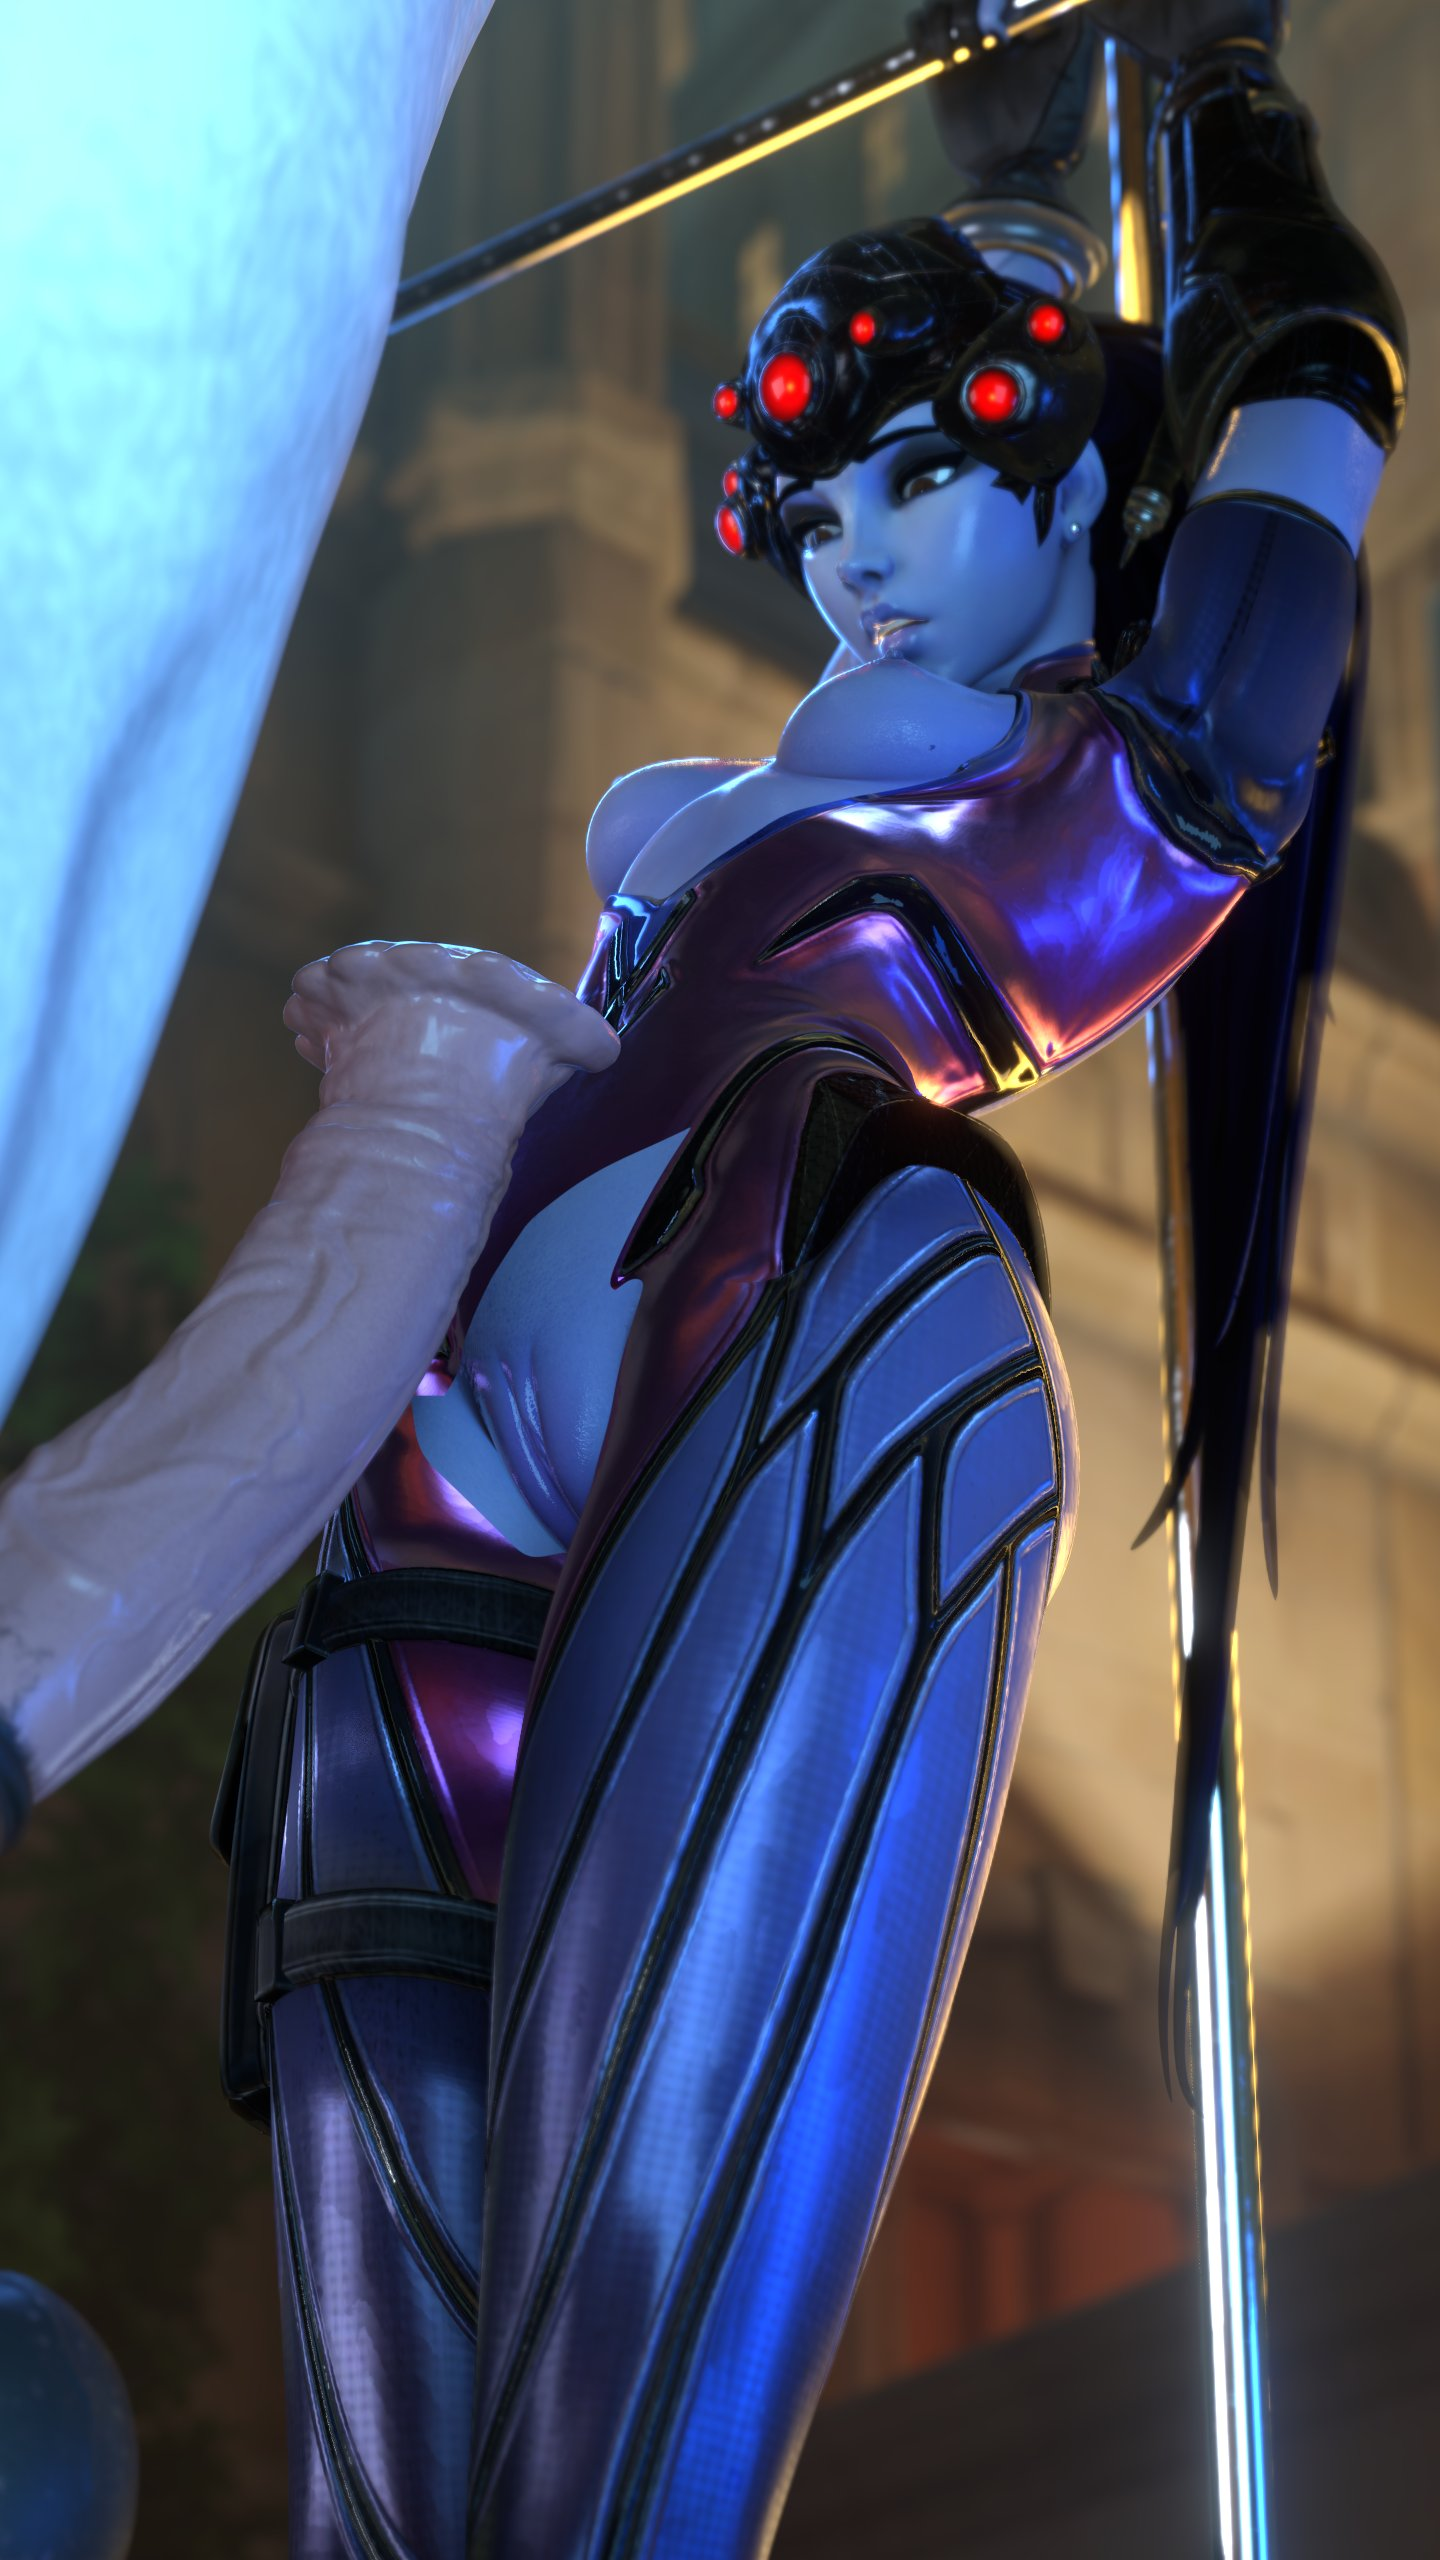 overwatch-free-sex-art-–-imminent-sex,-erection,-male,-zoophilia,-horse.